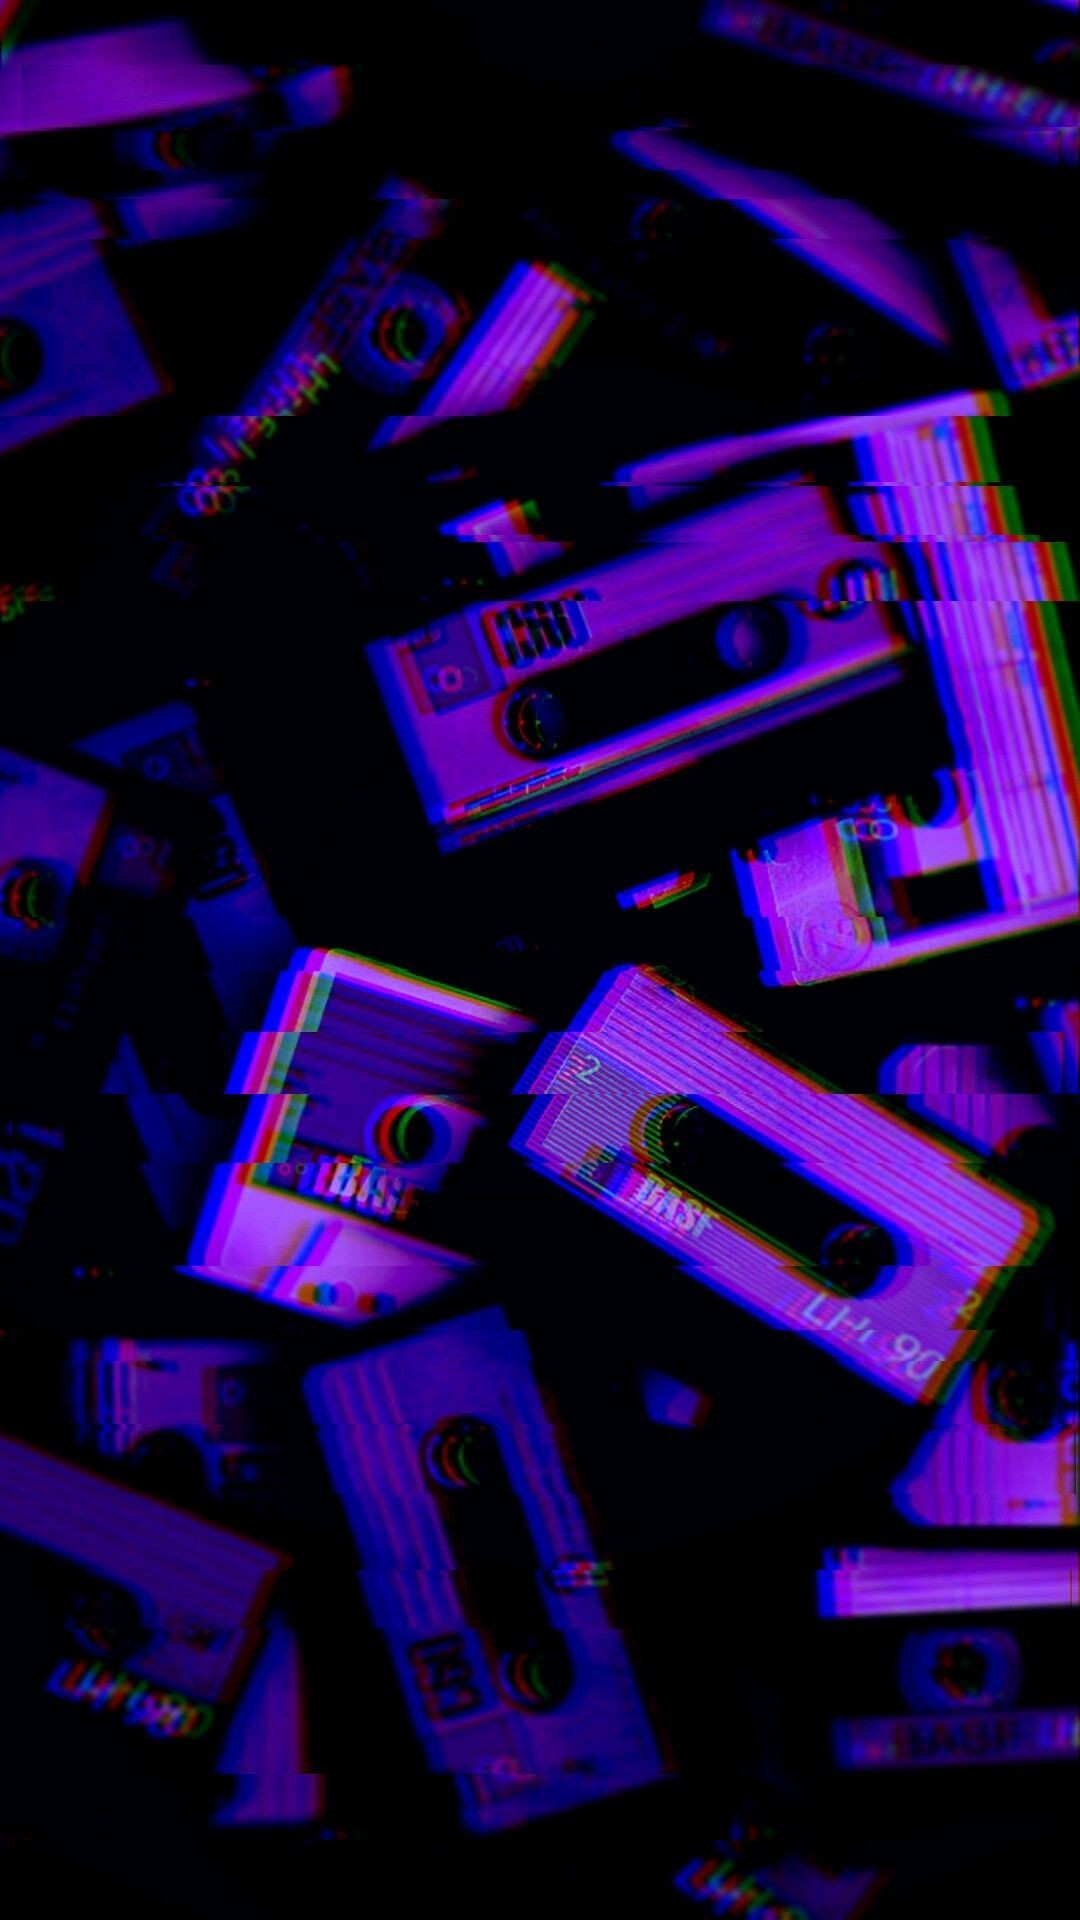 Free Download Vaporwave Wallpapers 79 Images 1080x1920 For Your